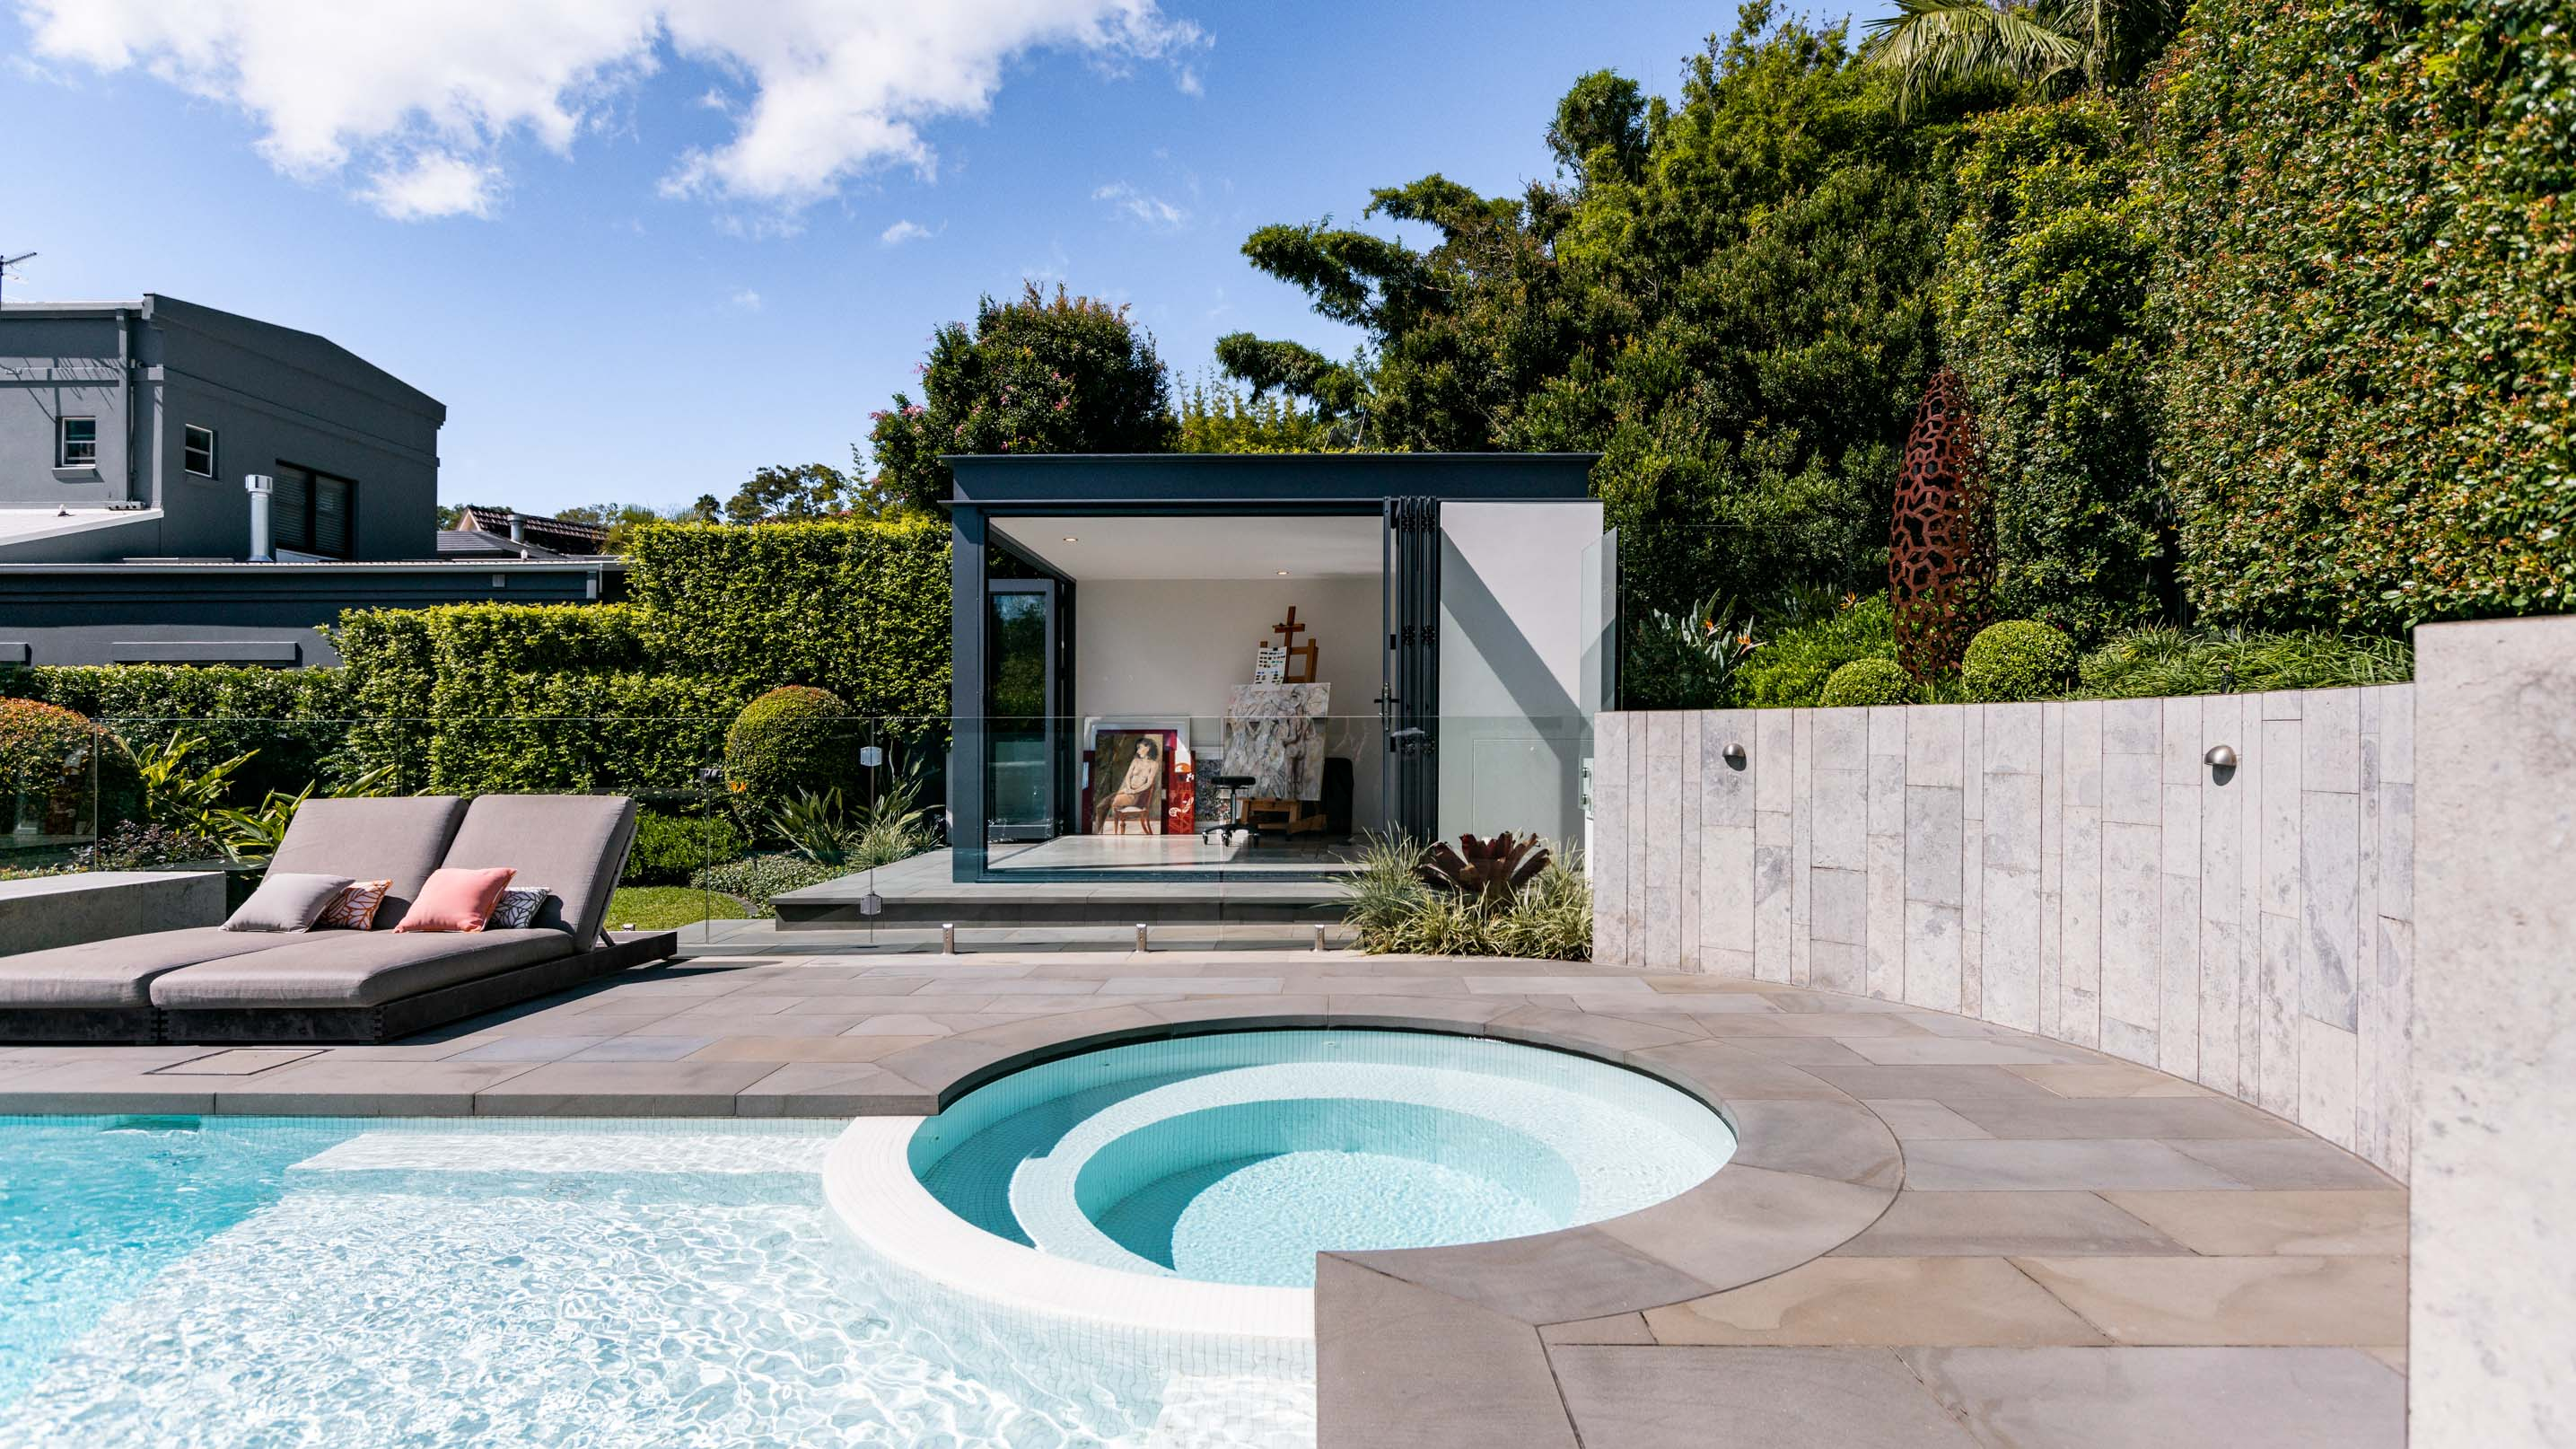 Blog hero-article-images 5-ways-enhance-design-of-your-pool